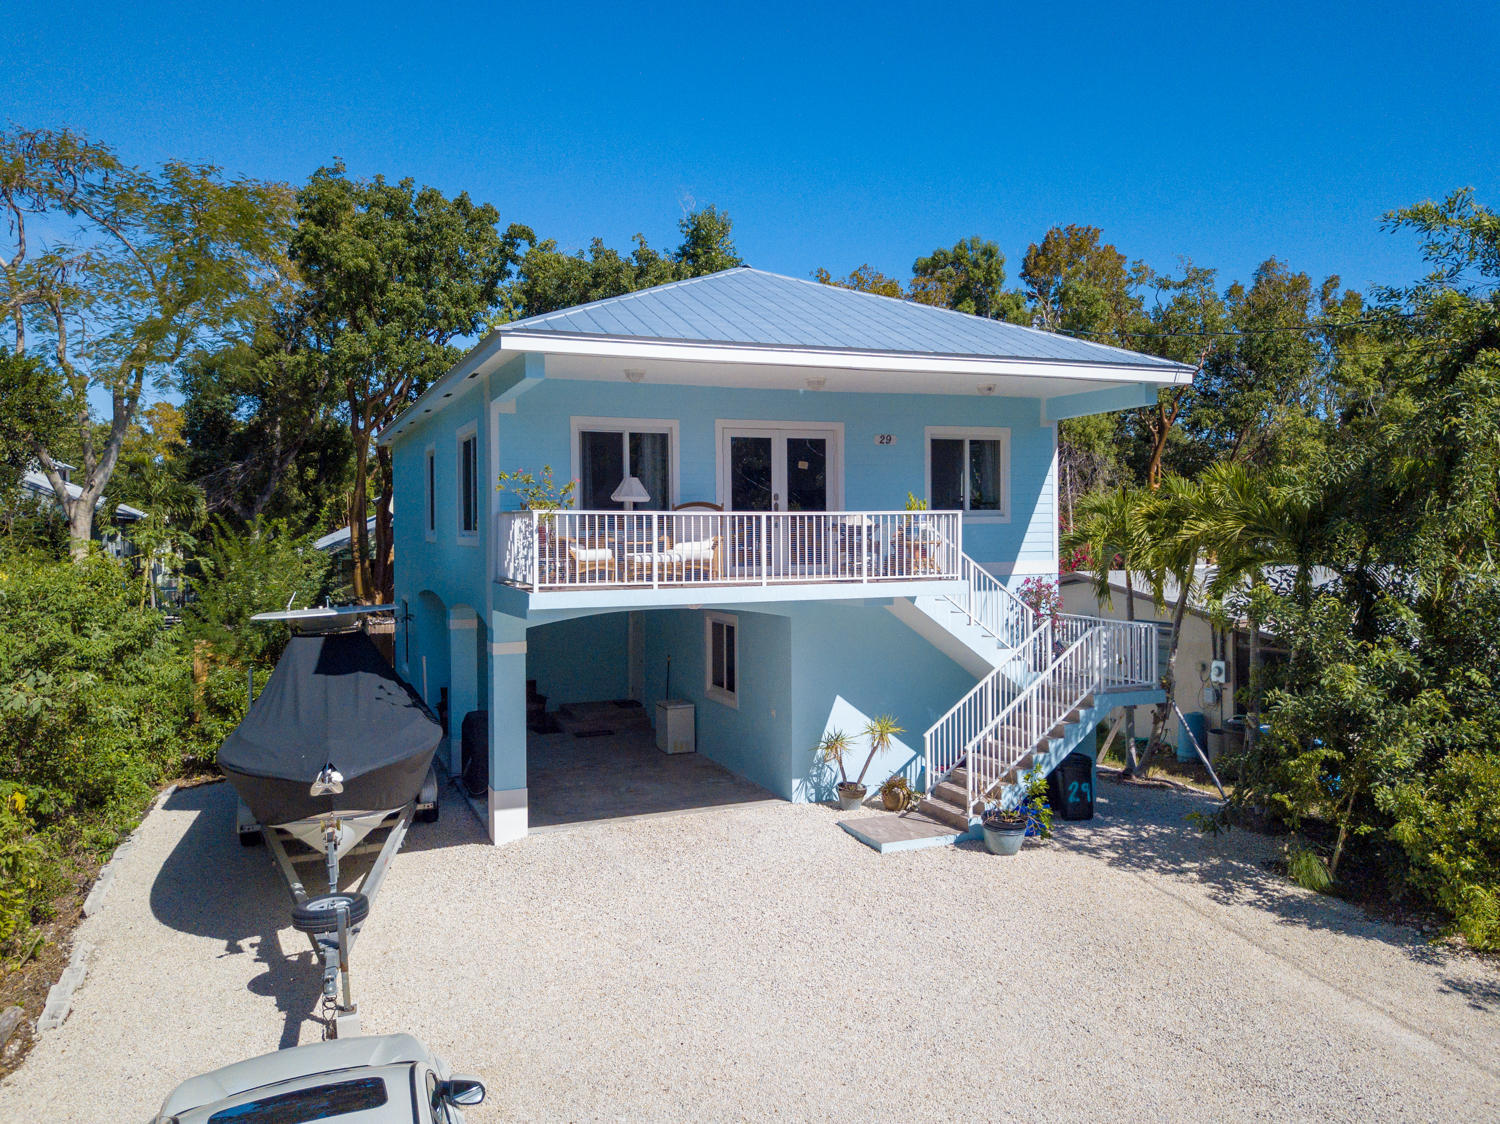 29 Pompano Avenue, Key Largo, FL 33037 - Listing #:584284 on map of sombrero beach, map of north ft myers, map of everglades np, map of biscayne park, map of st. marks, map of opa locka, map of big coppitt key, map of rainbow river, map of north bay village, map of indian key, map of glades county, map of diamonds, map of little conch key, map of pelican key, map of keaton beach, map of the keys, map of sigsbee park, map of pahokee, map of virginia key, map of cape kennedy,